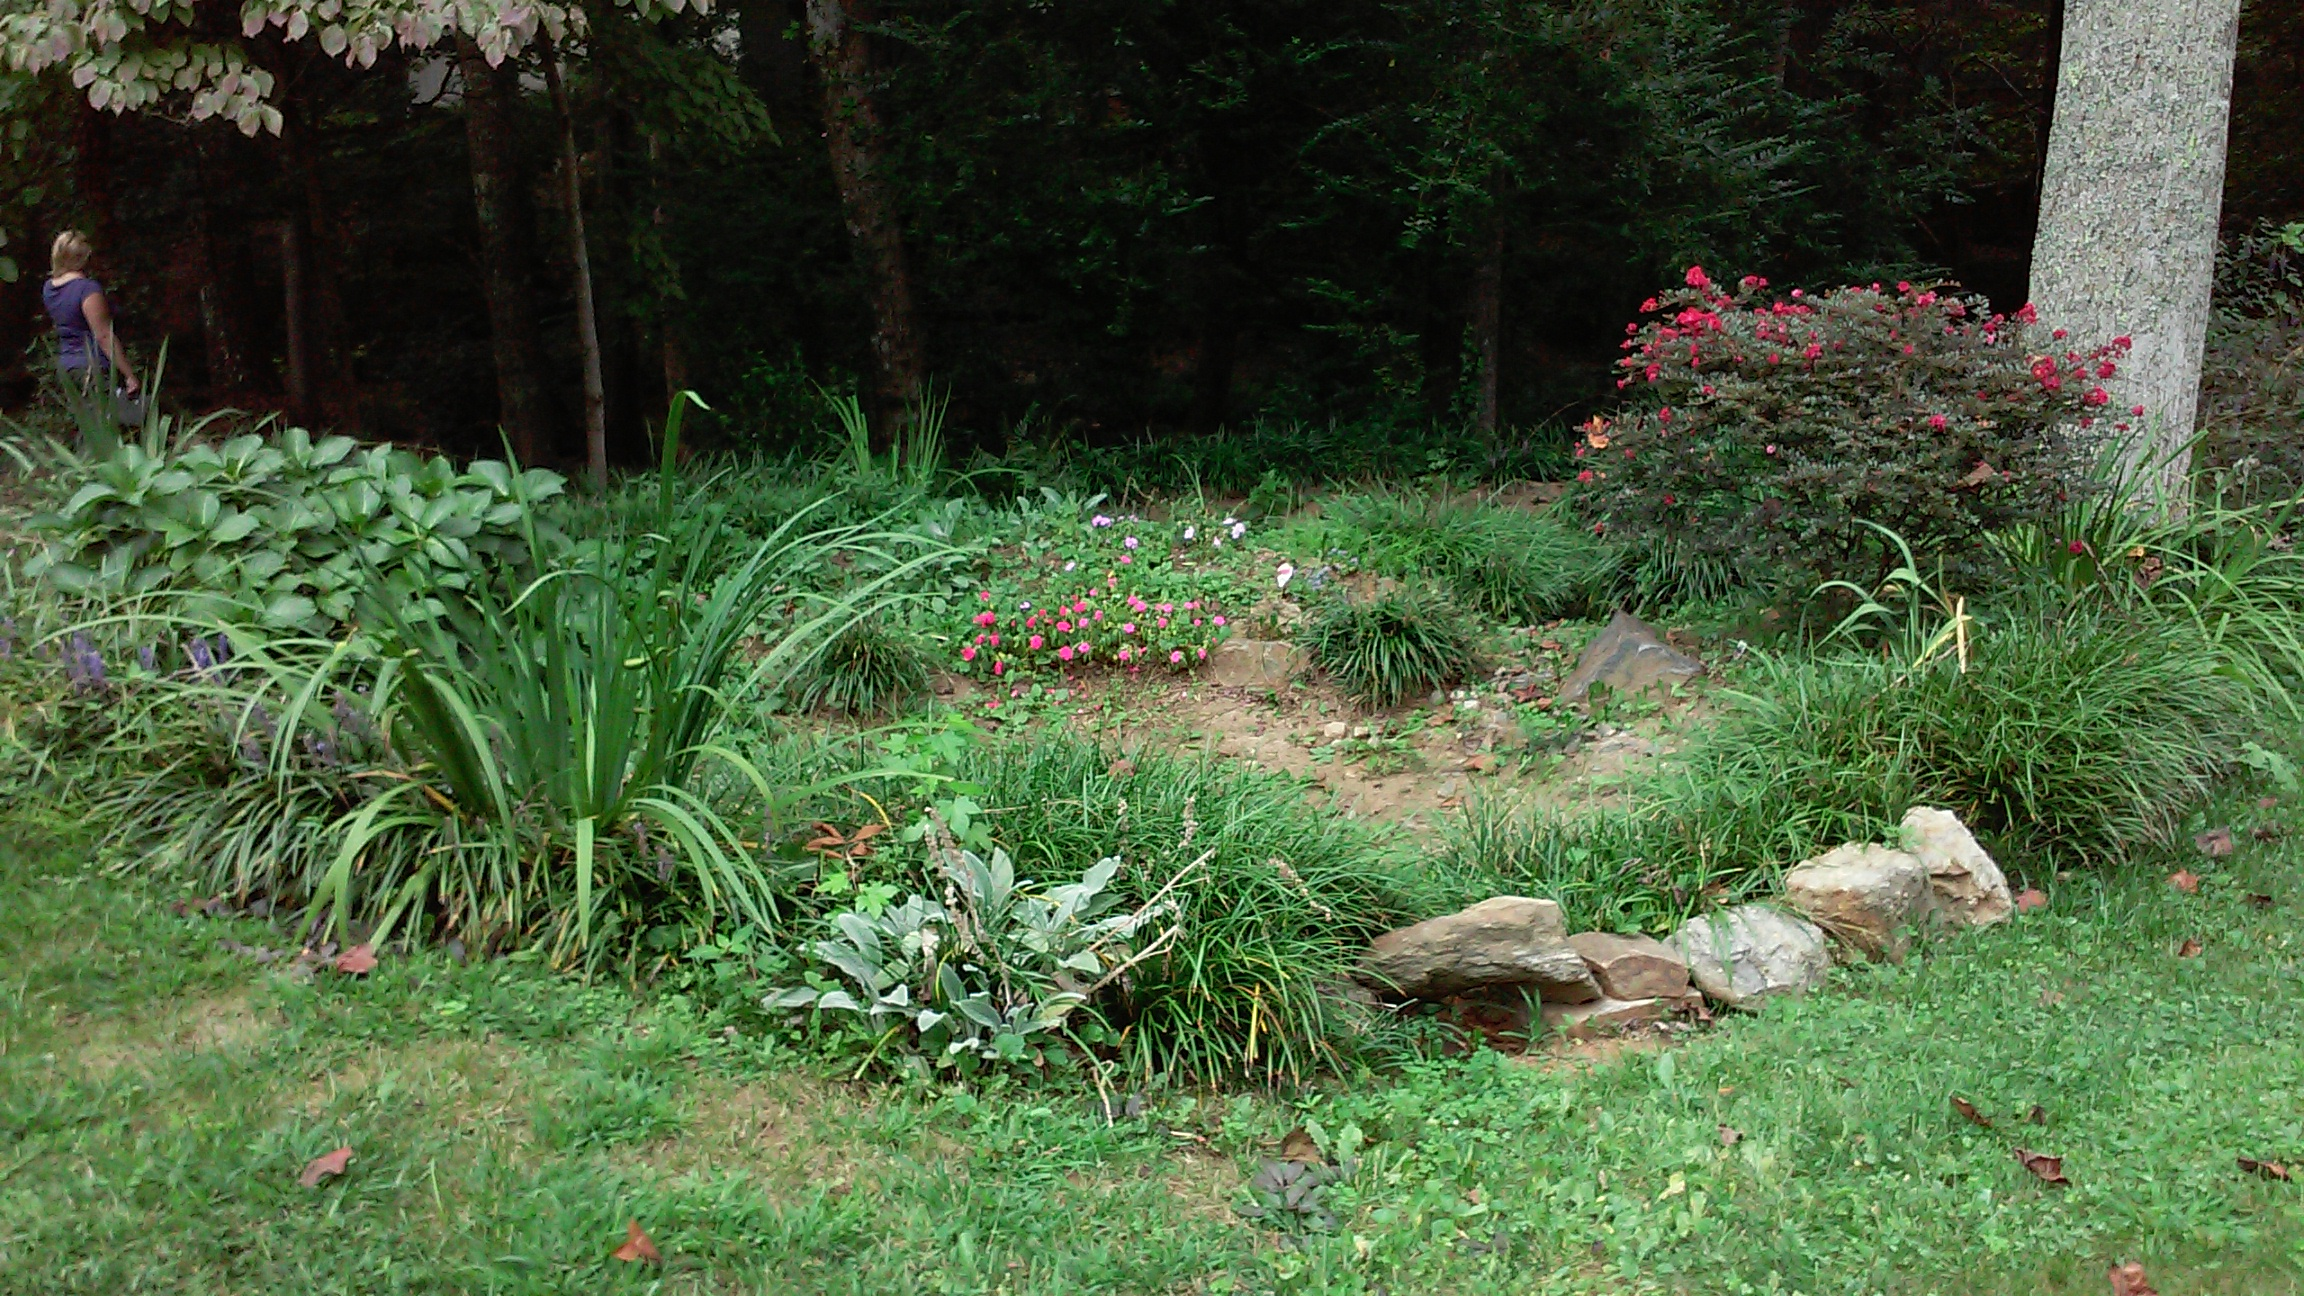 This homeowner had quite a bit of water flowing through their property. With the help of Forsyth Soil & Water Conservation District and Forsyth County Cooperative Extension, they were able to install a terraced rain garden to slow and spread out the flow while watering some cool plants!